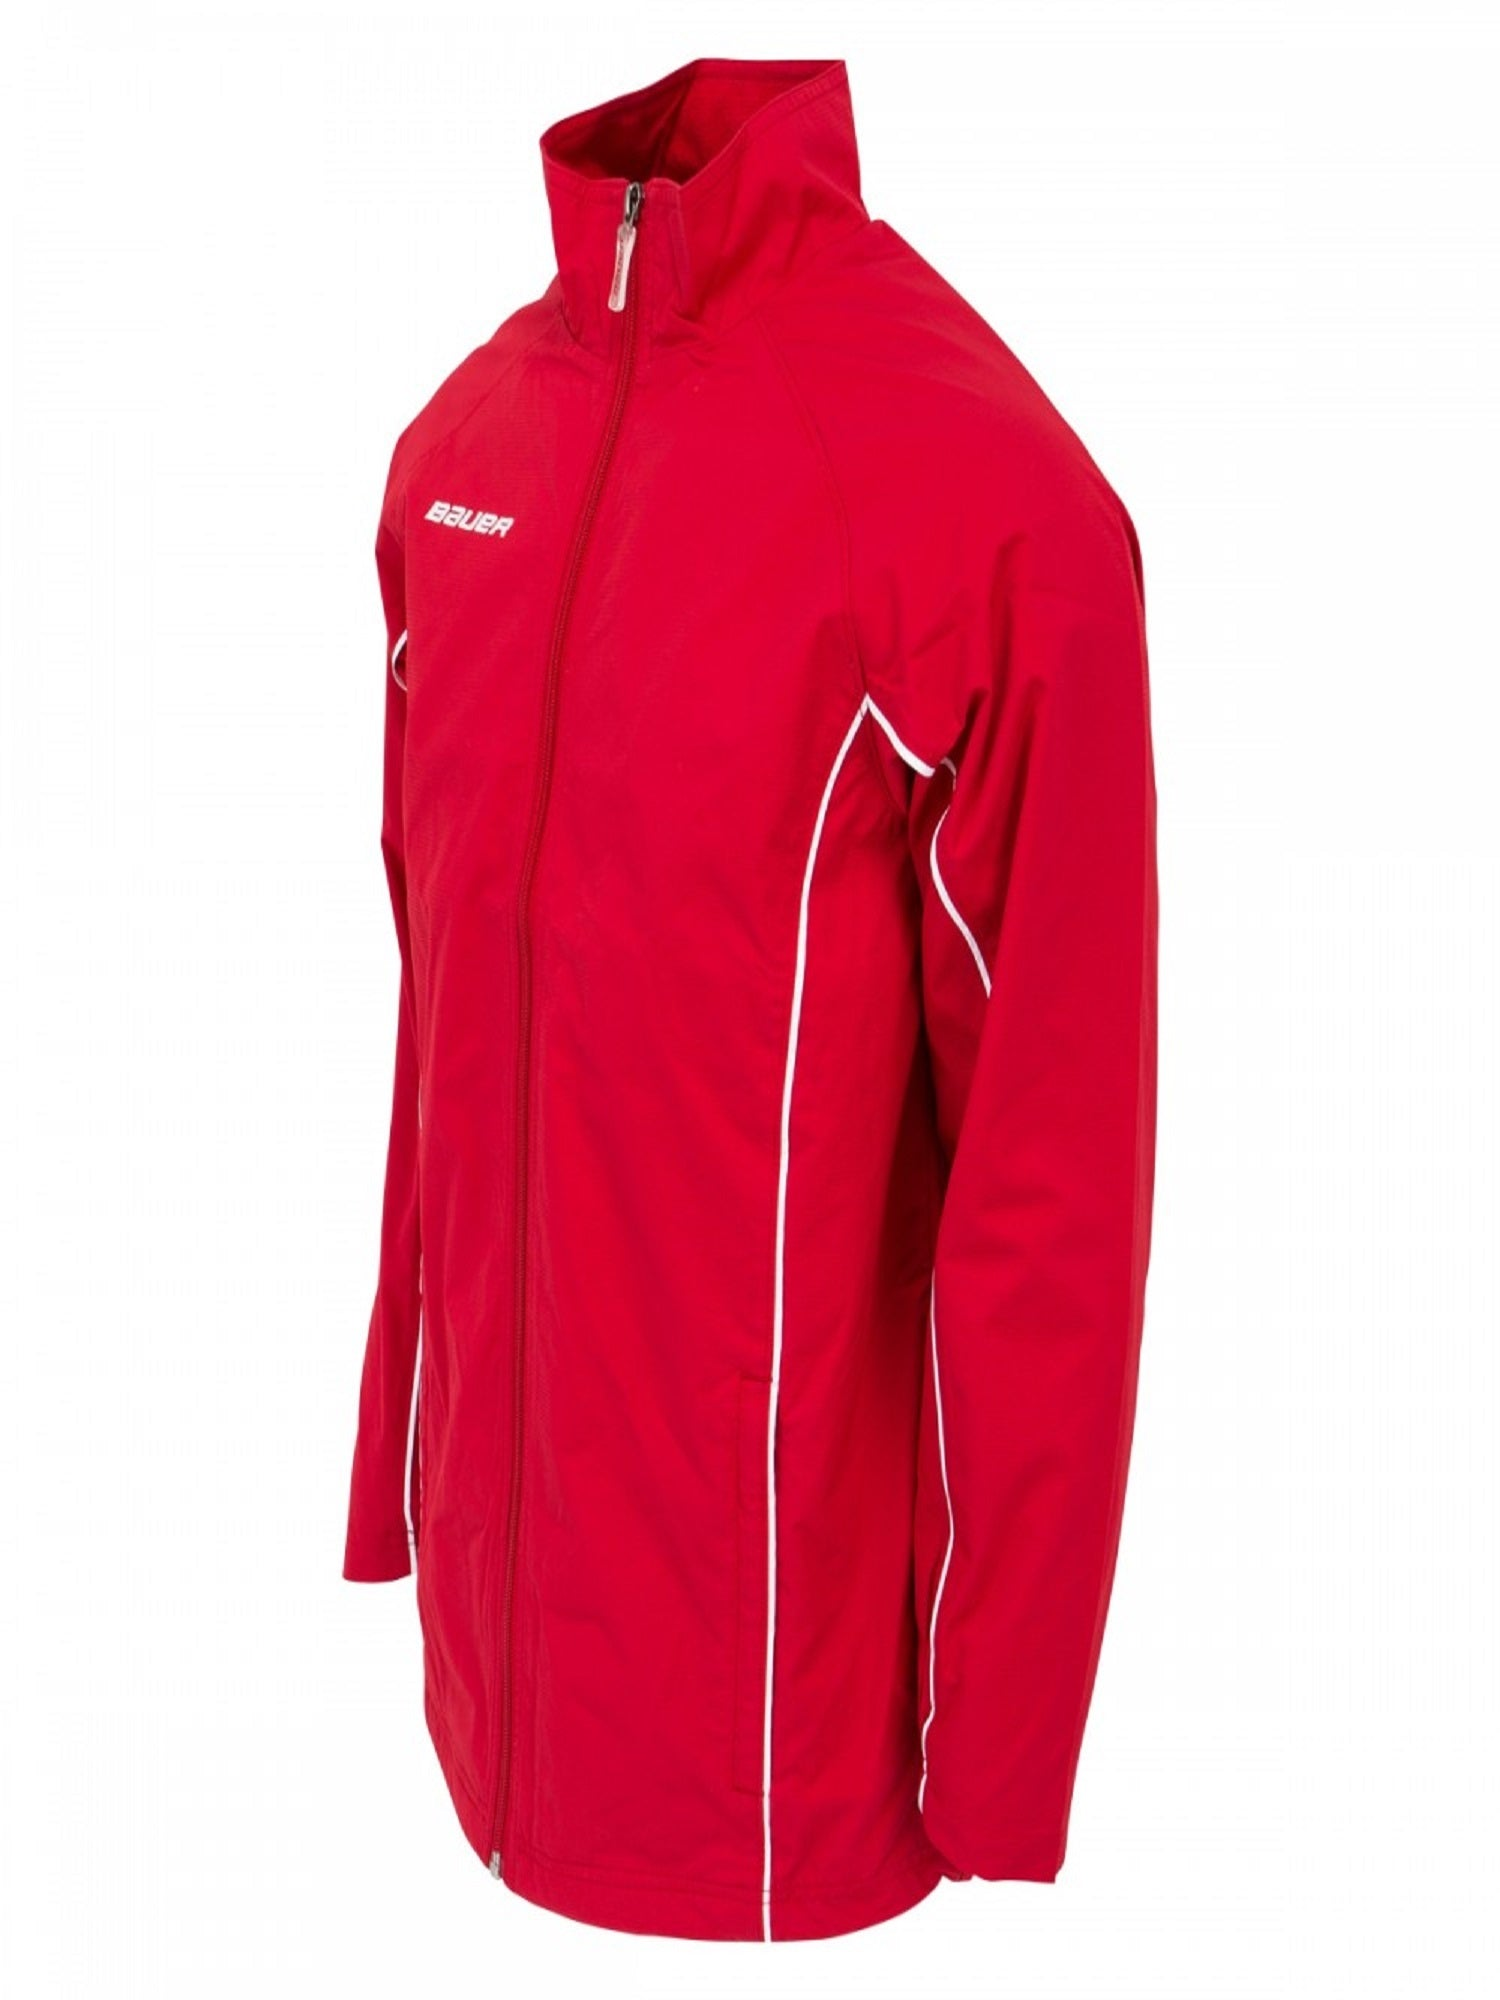 Bauer Youth Warm Up Jacket, Red X-Small